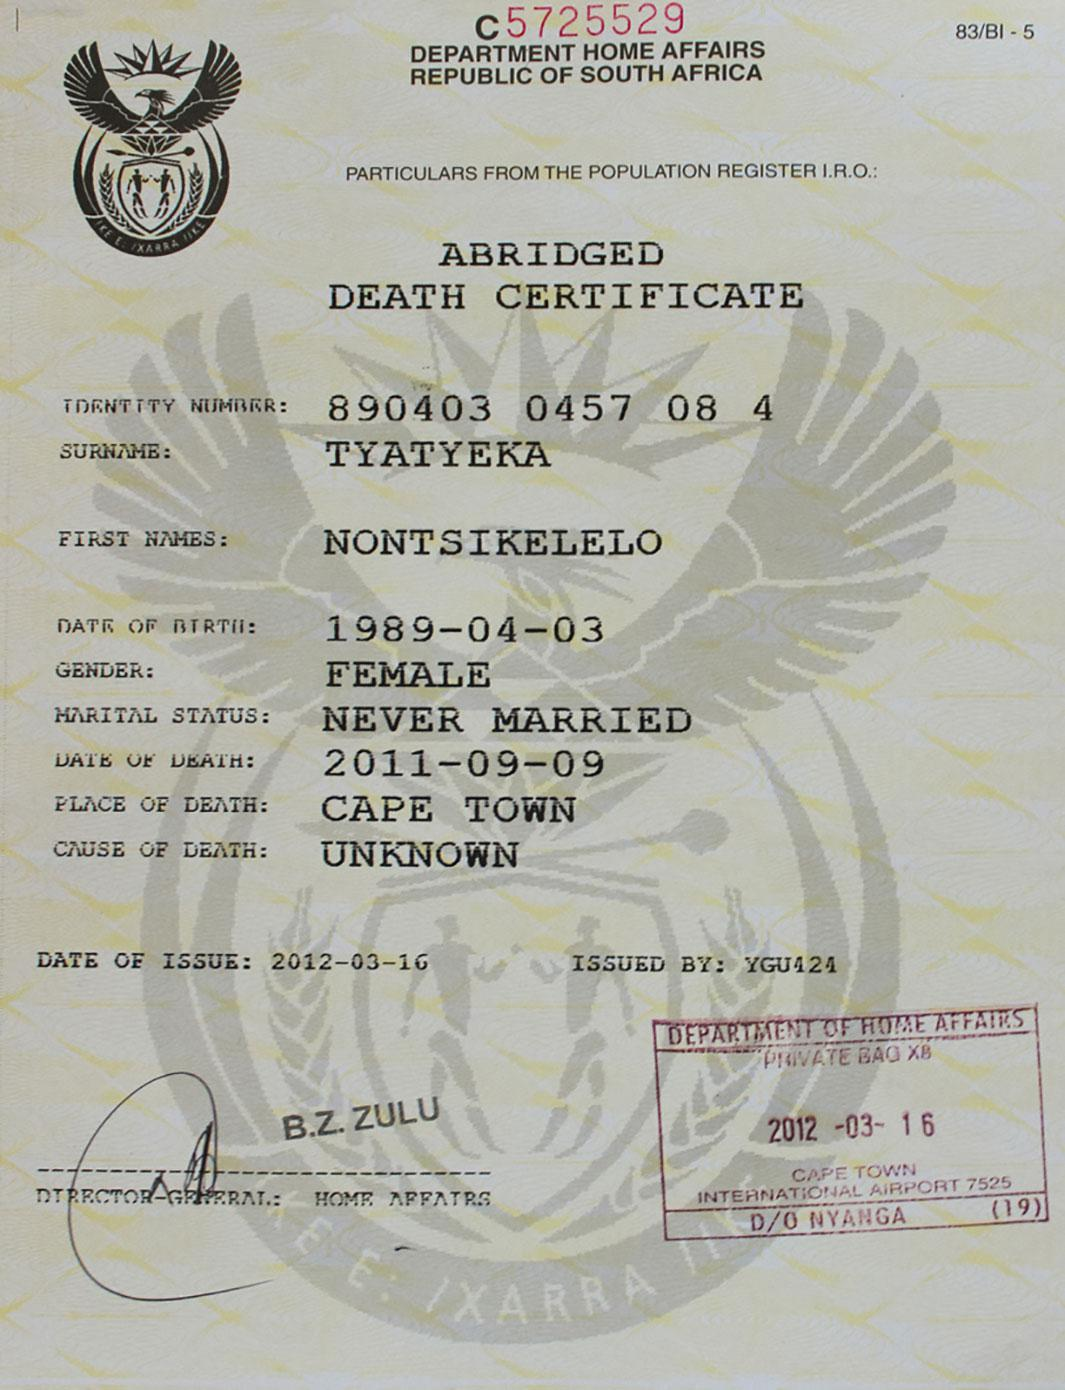 Ntisiki's death certificate